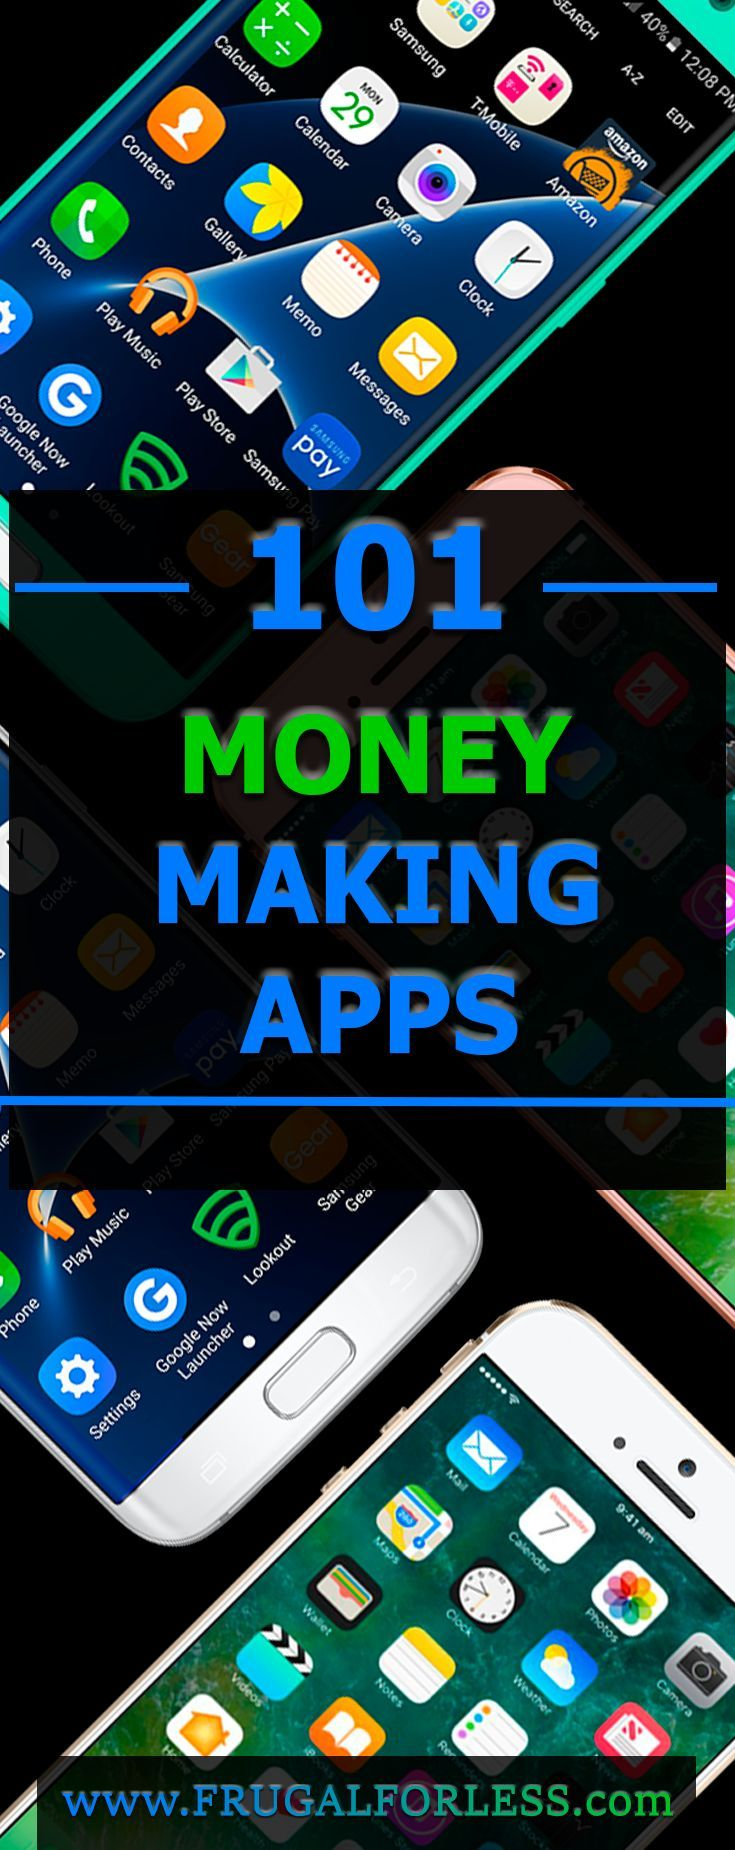 101 Free Money Making Apps To Earn Extra Money (2020